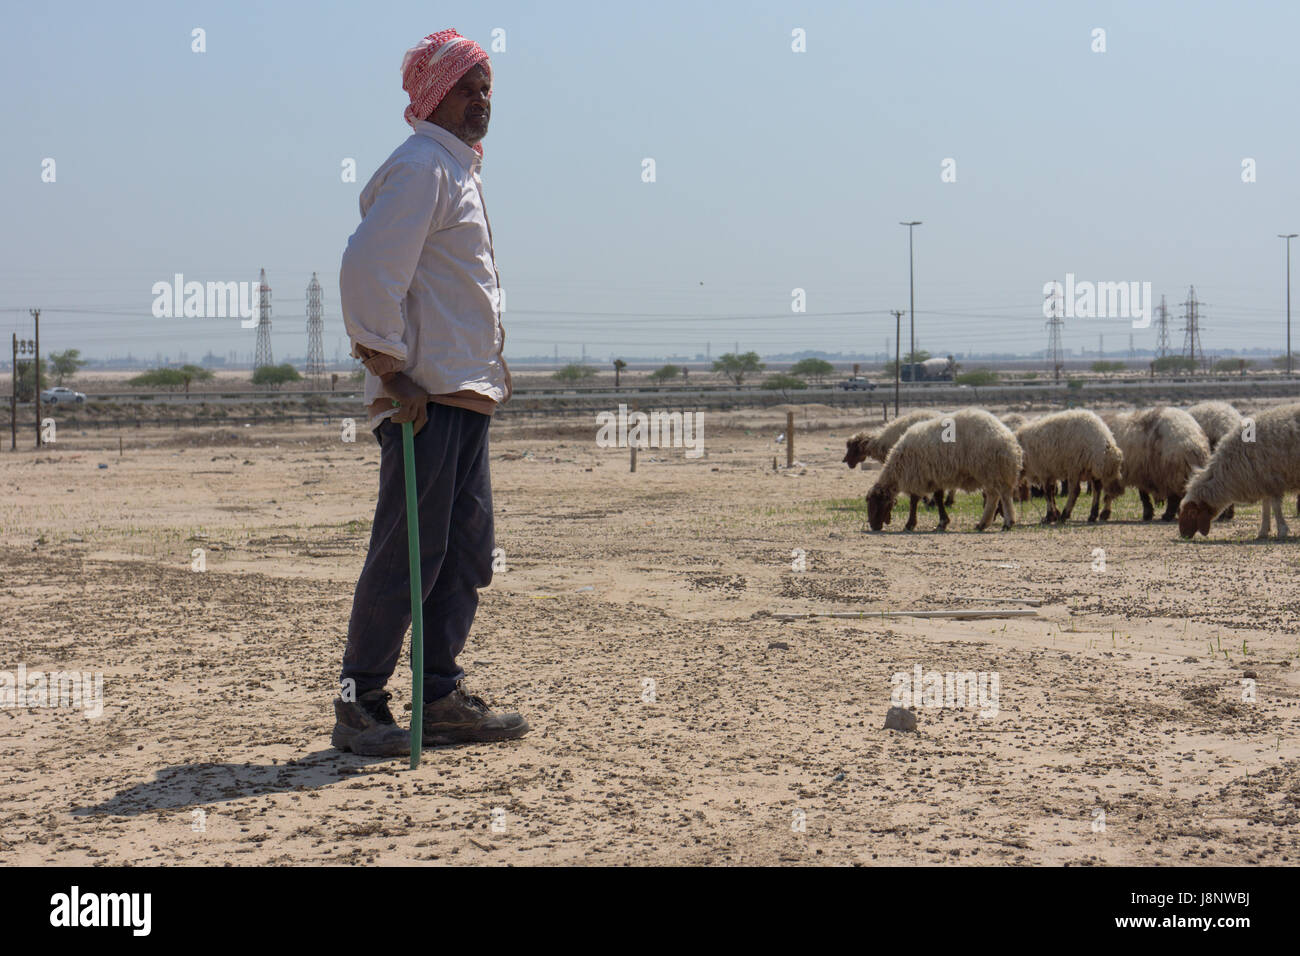 Migrant worker working as a shepherd in Kuwait watching sheep near a motorway. - Stock Image